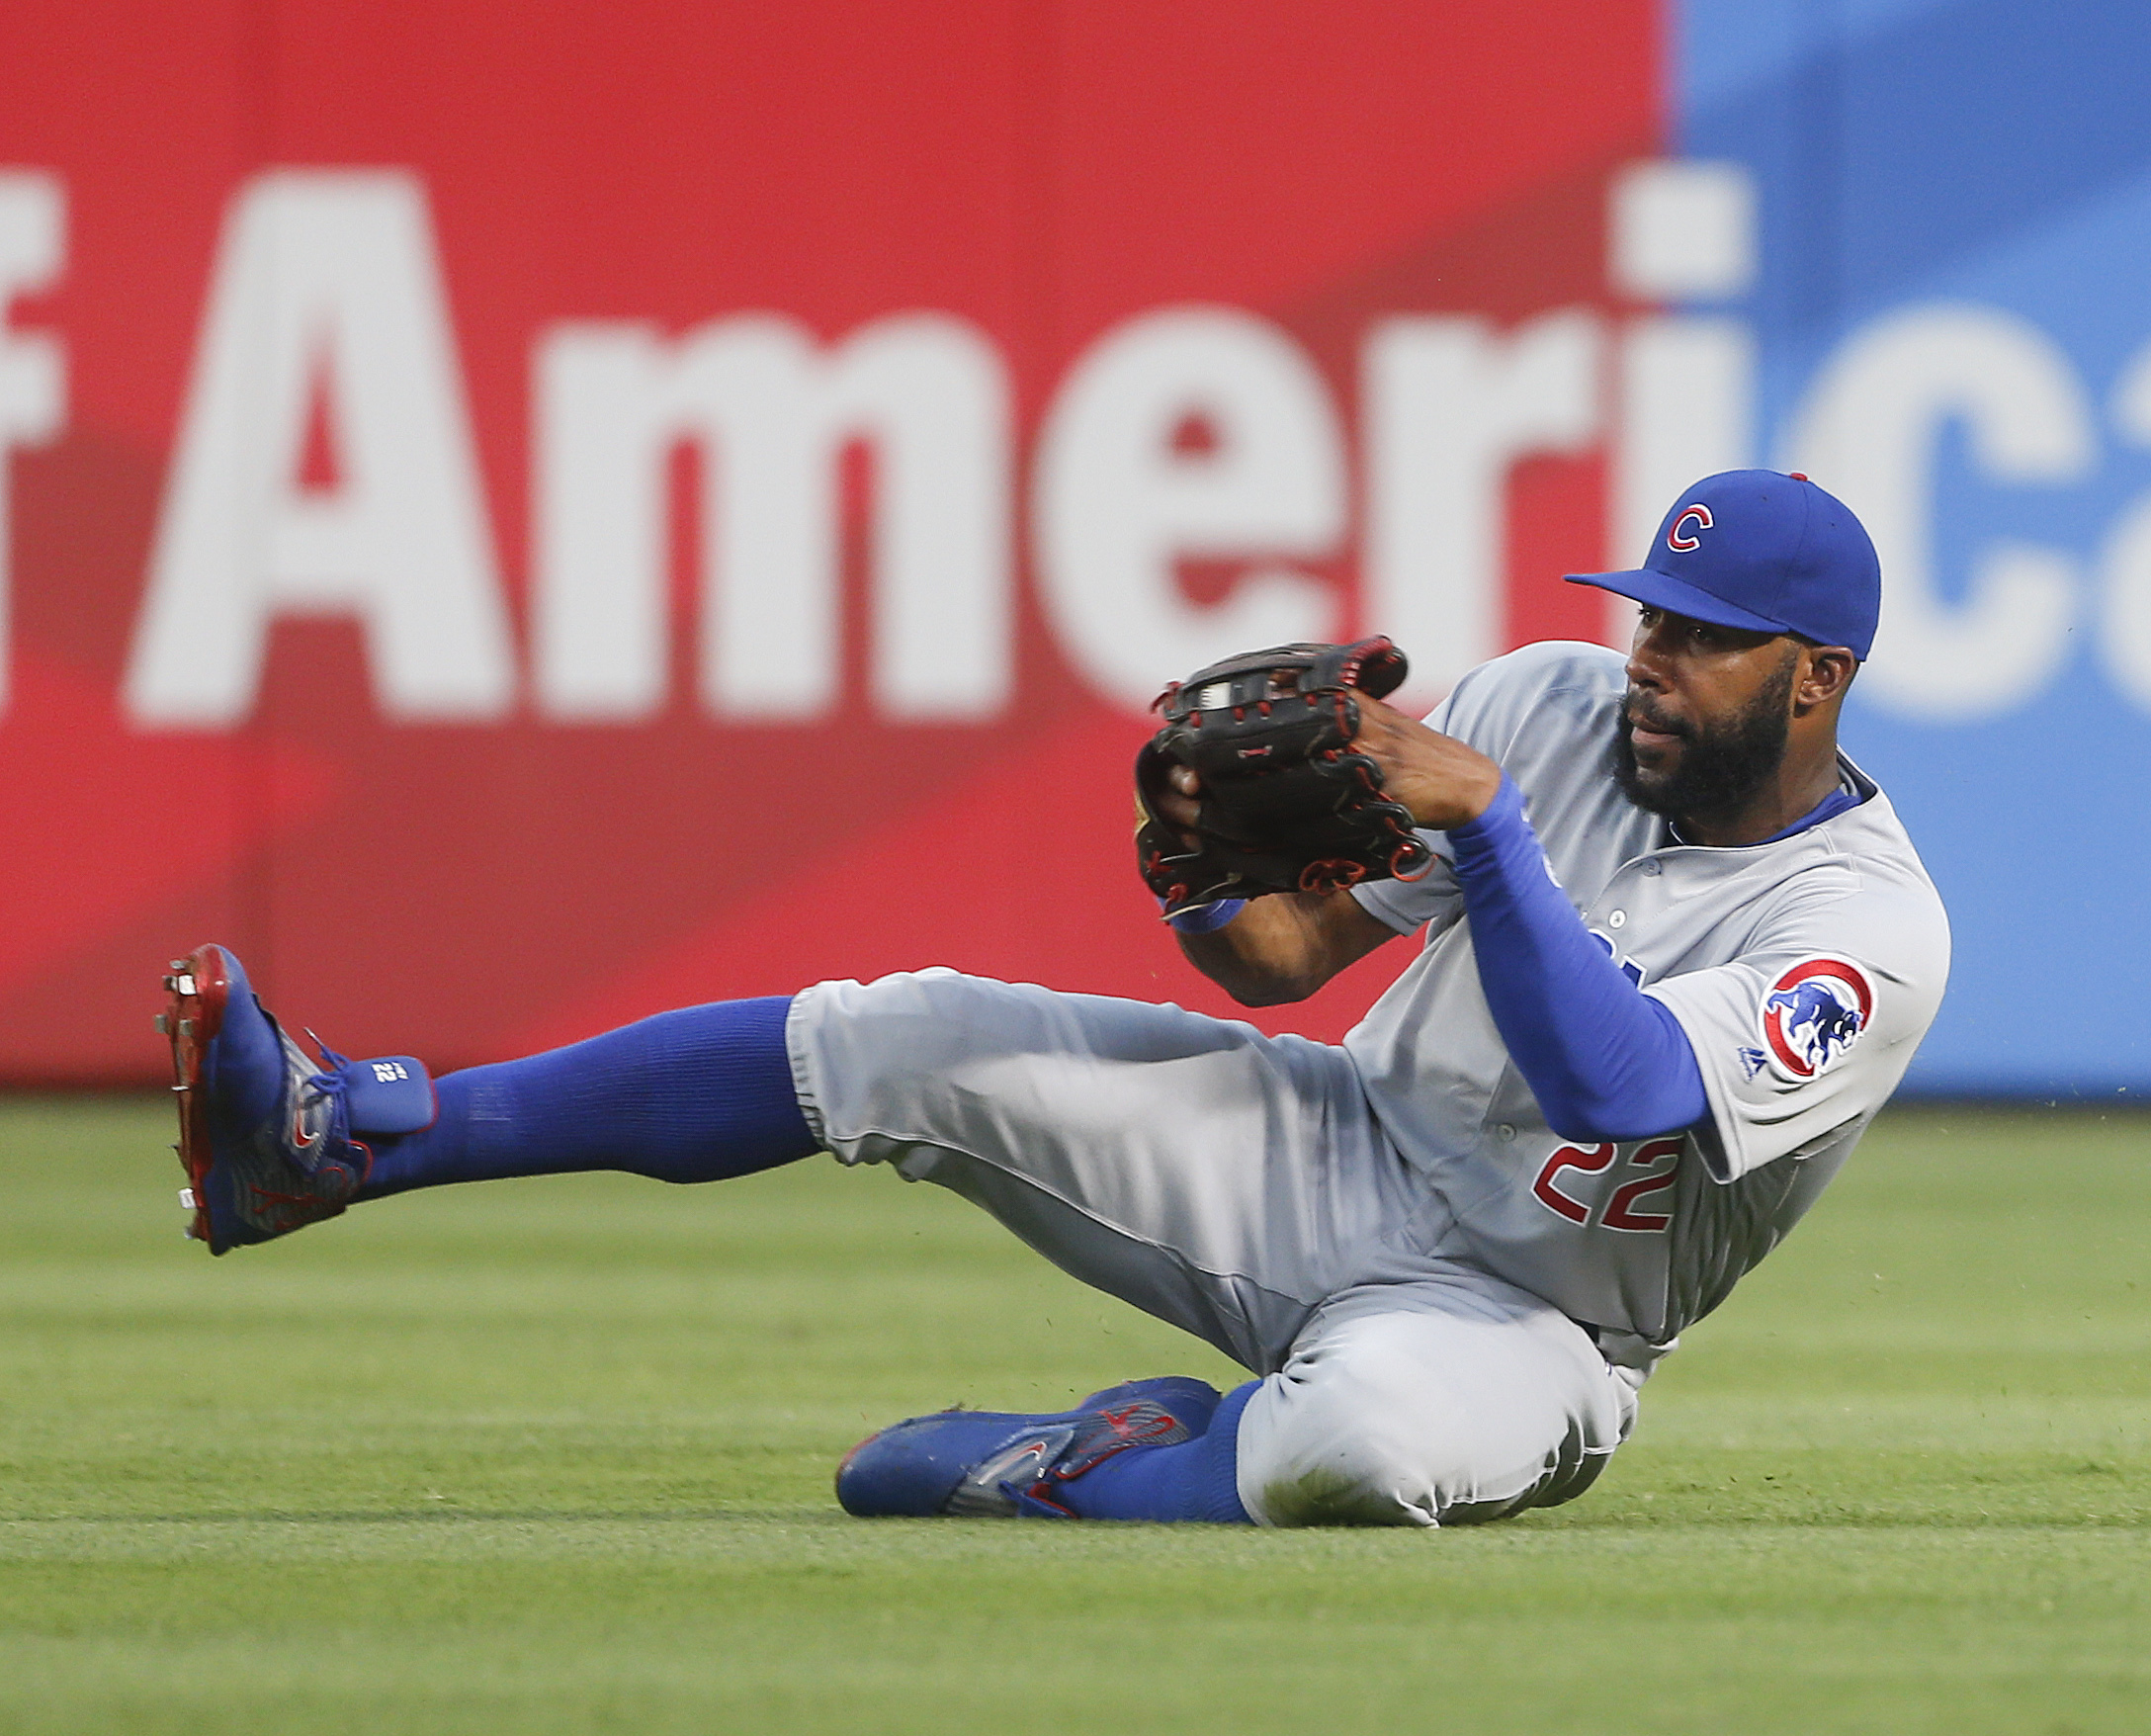 FILE - In this June 10, 2016, file photo, Chicago Cubs right fielder Jason Heyward makes a sliding catch on a fly ball by Atlanta Braves' Nick Markakis during the third inning of a baseball game Friday, June 10, 2016, in Atlanta. Heyward and Cubs first ba